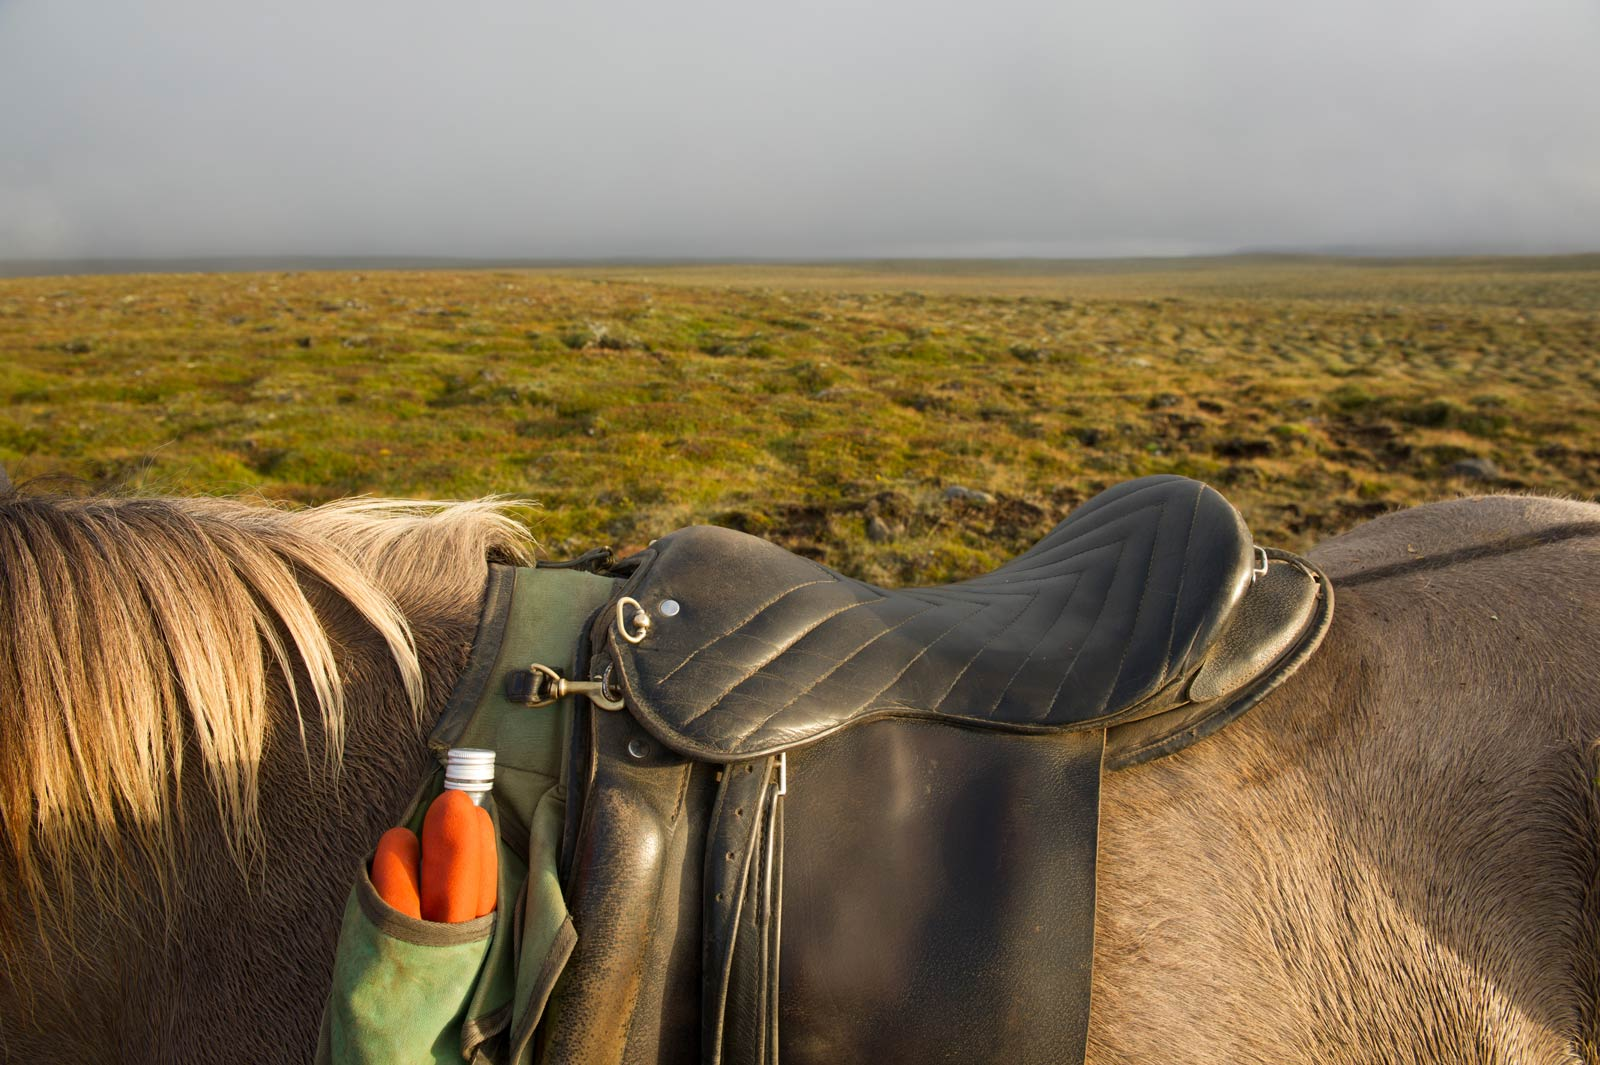 An Icelandic horse stands with saddle on in Iceland.